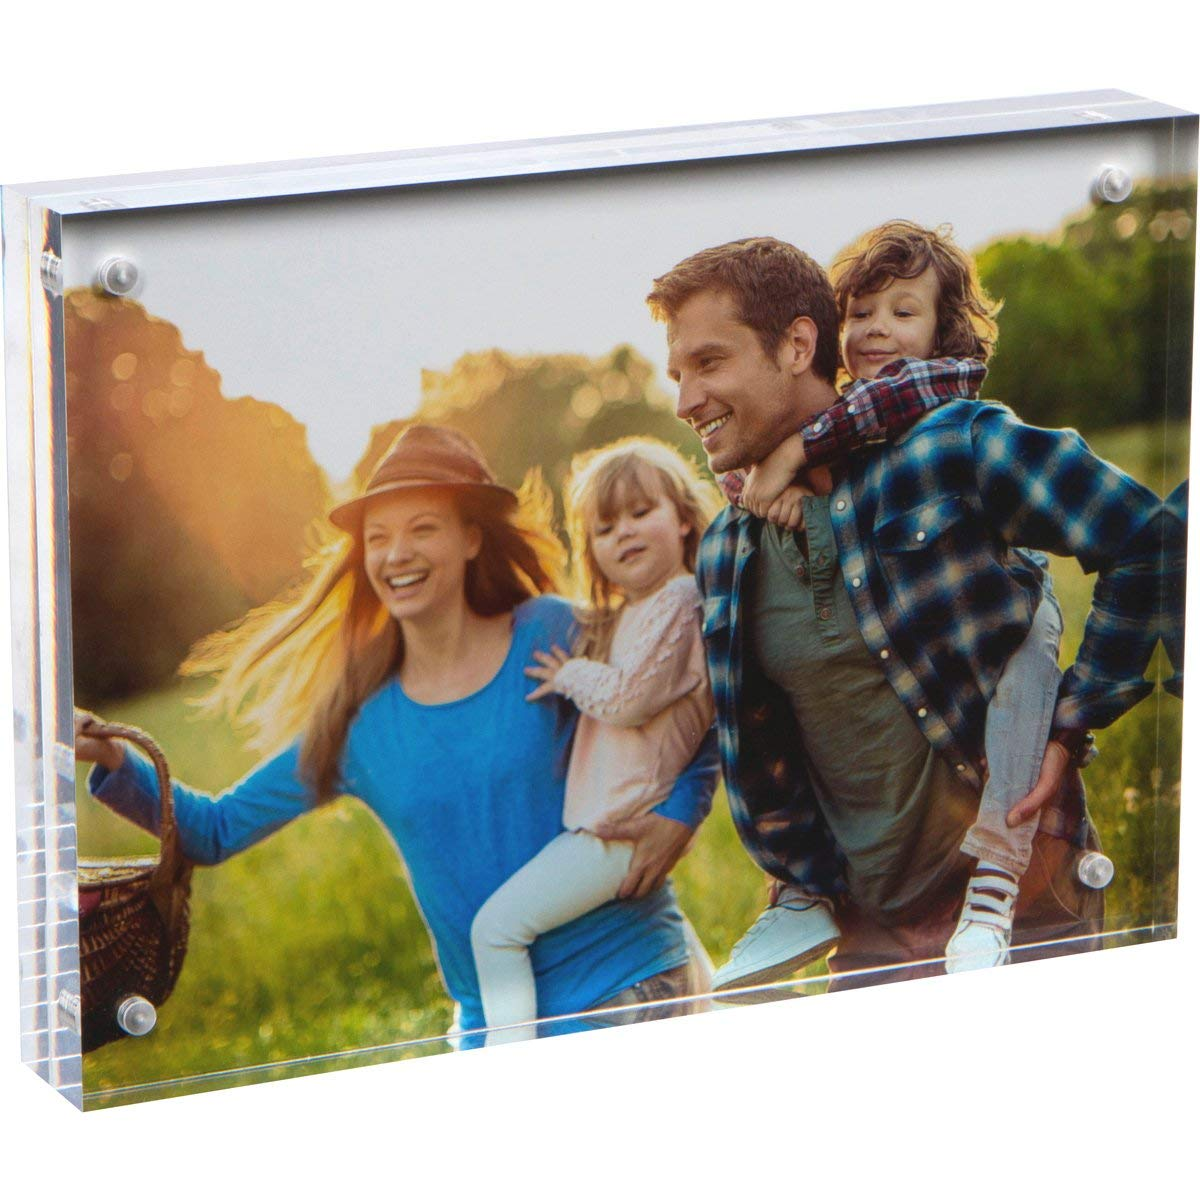 """SimbaLux Magnetic Acrylic Picture Photo Frame 5x7 inches, Clear Glass Like, Double Sided Frameless Desktop Floating Display, Free Standing, Easy Change, for Family, Postcards, 5"""" by 7"""", 2.4cm Thick"""